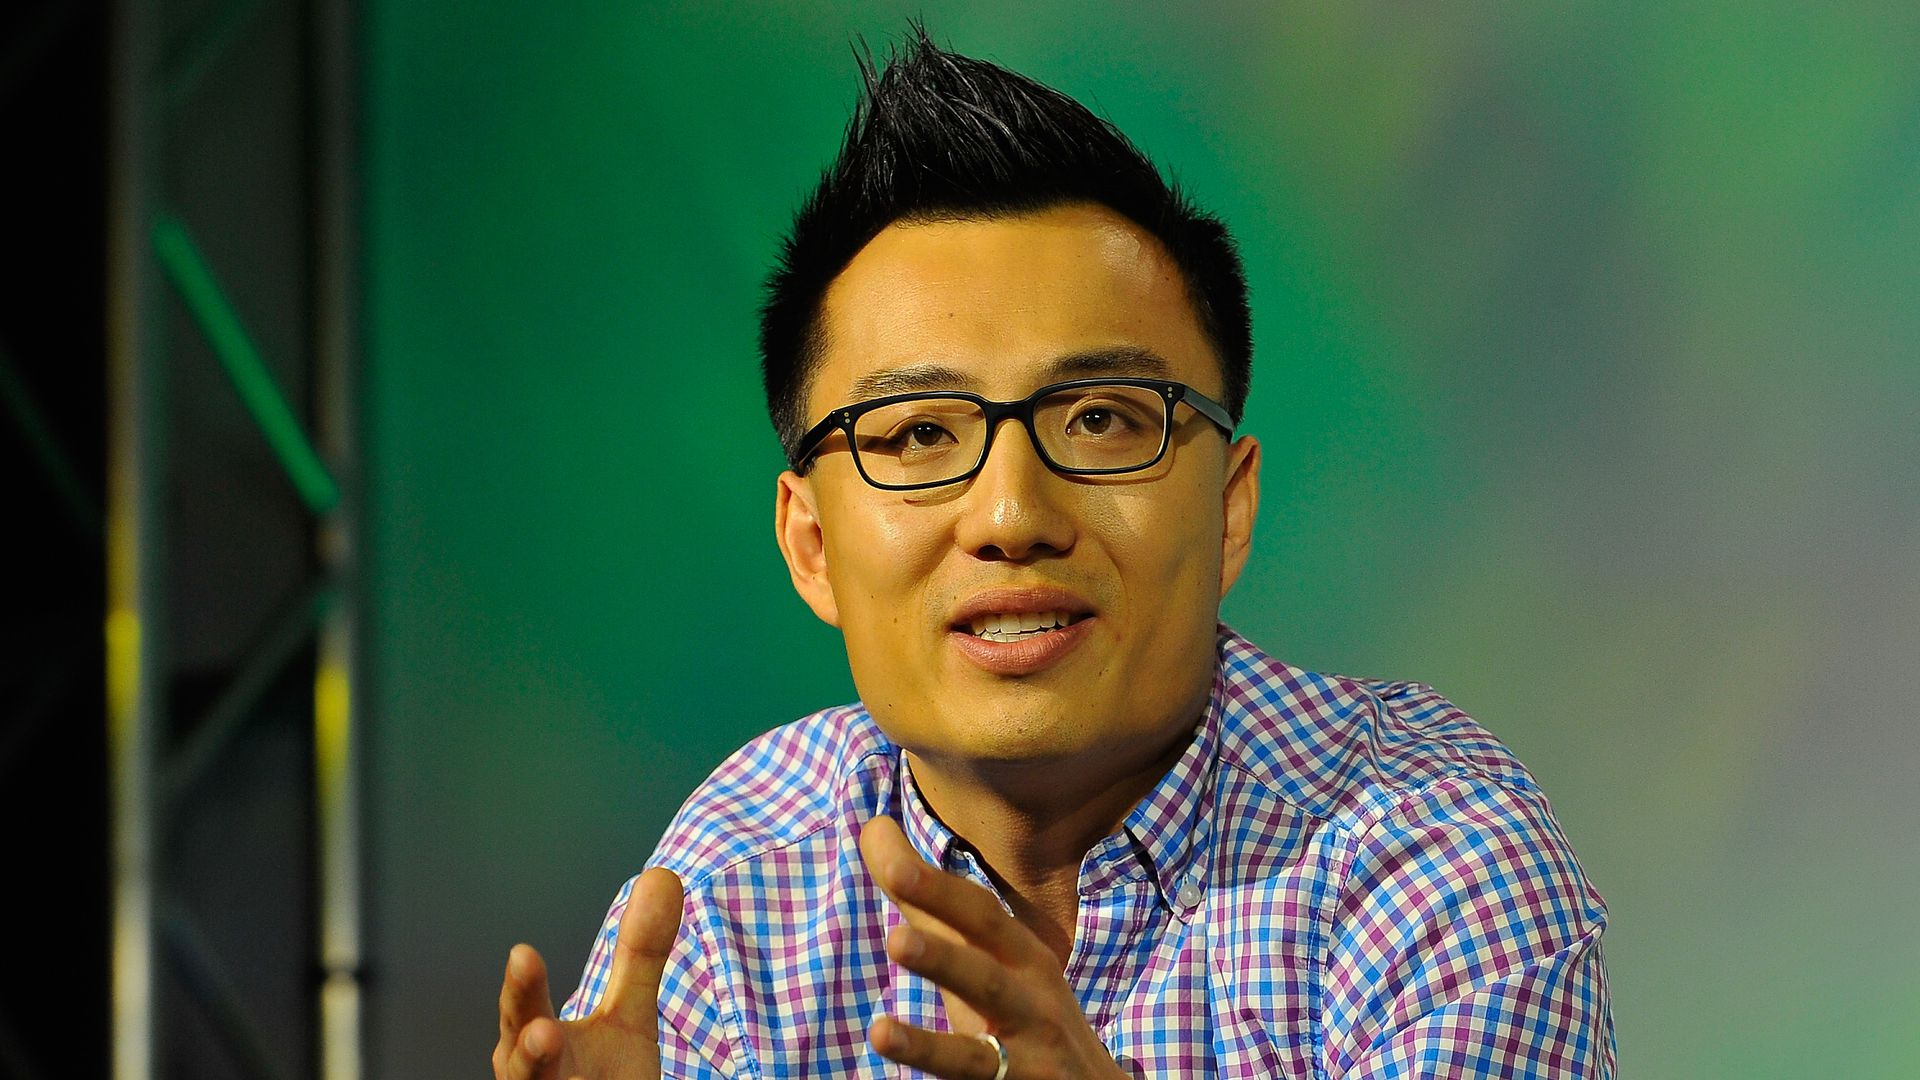 DoorDash co-founder and CEO Tony Xu